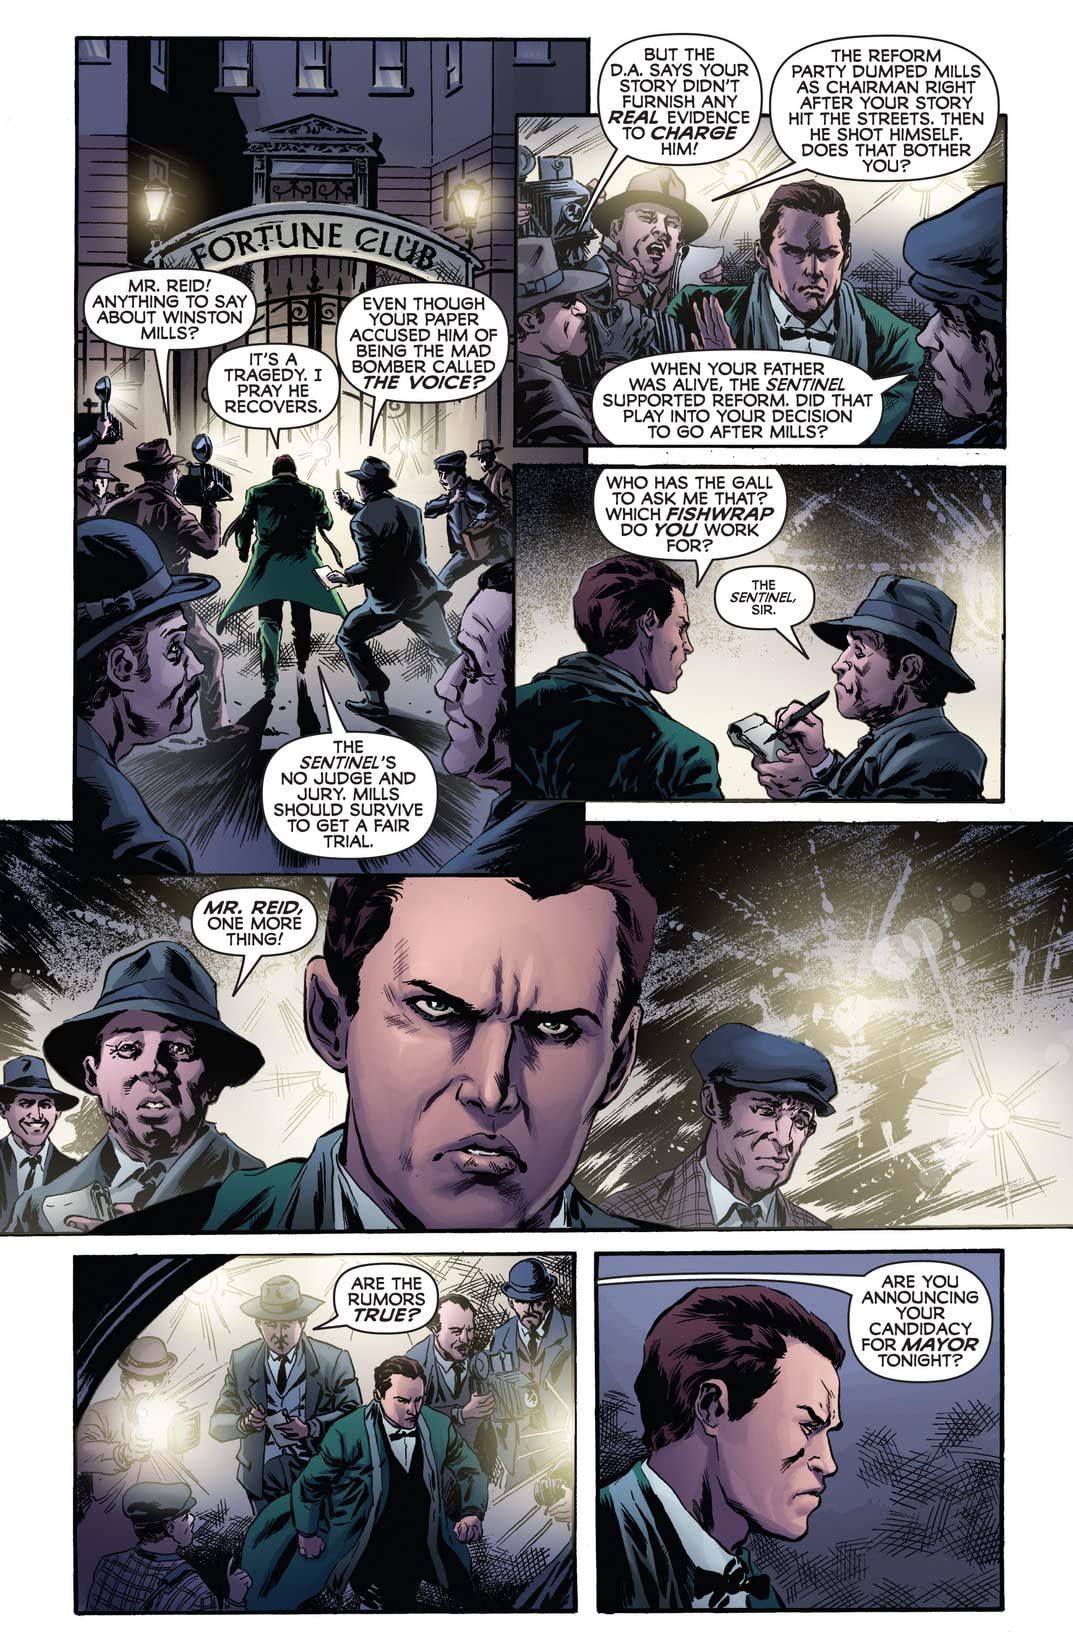 The Green Hornet #4: Digital Exclusive Edition